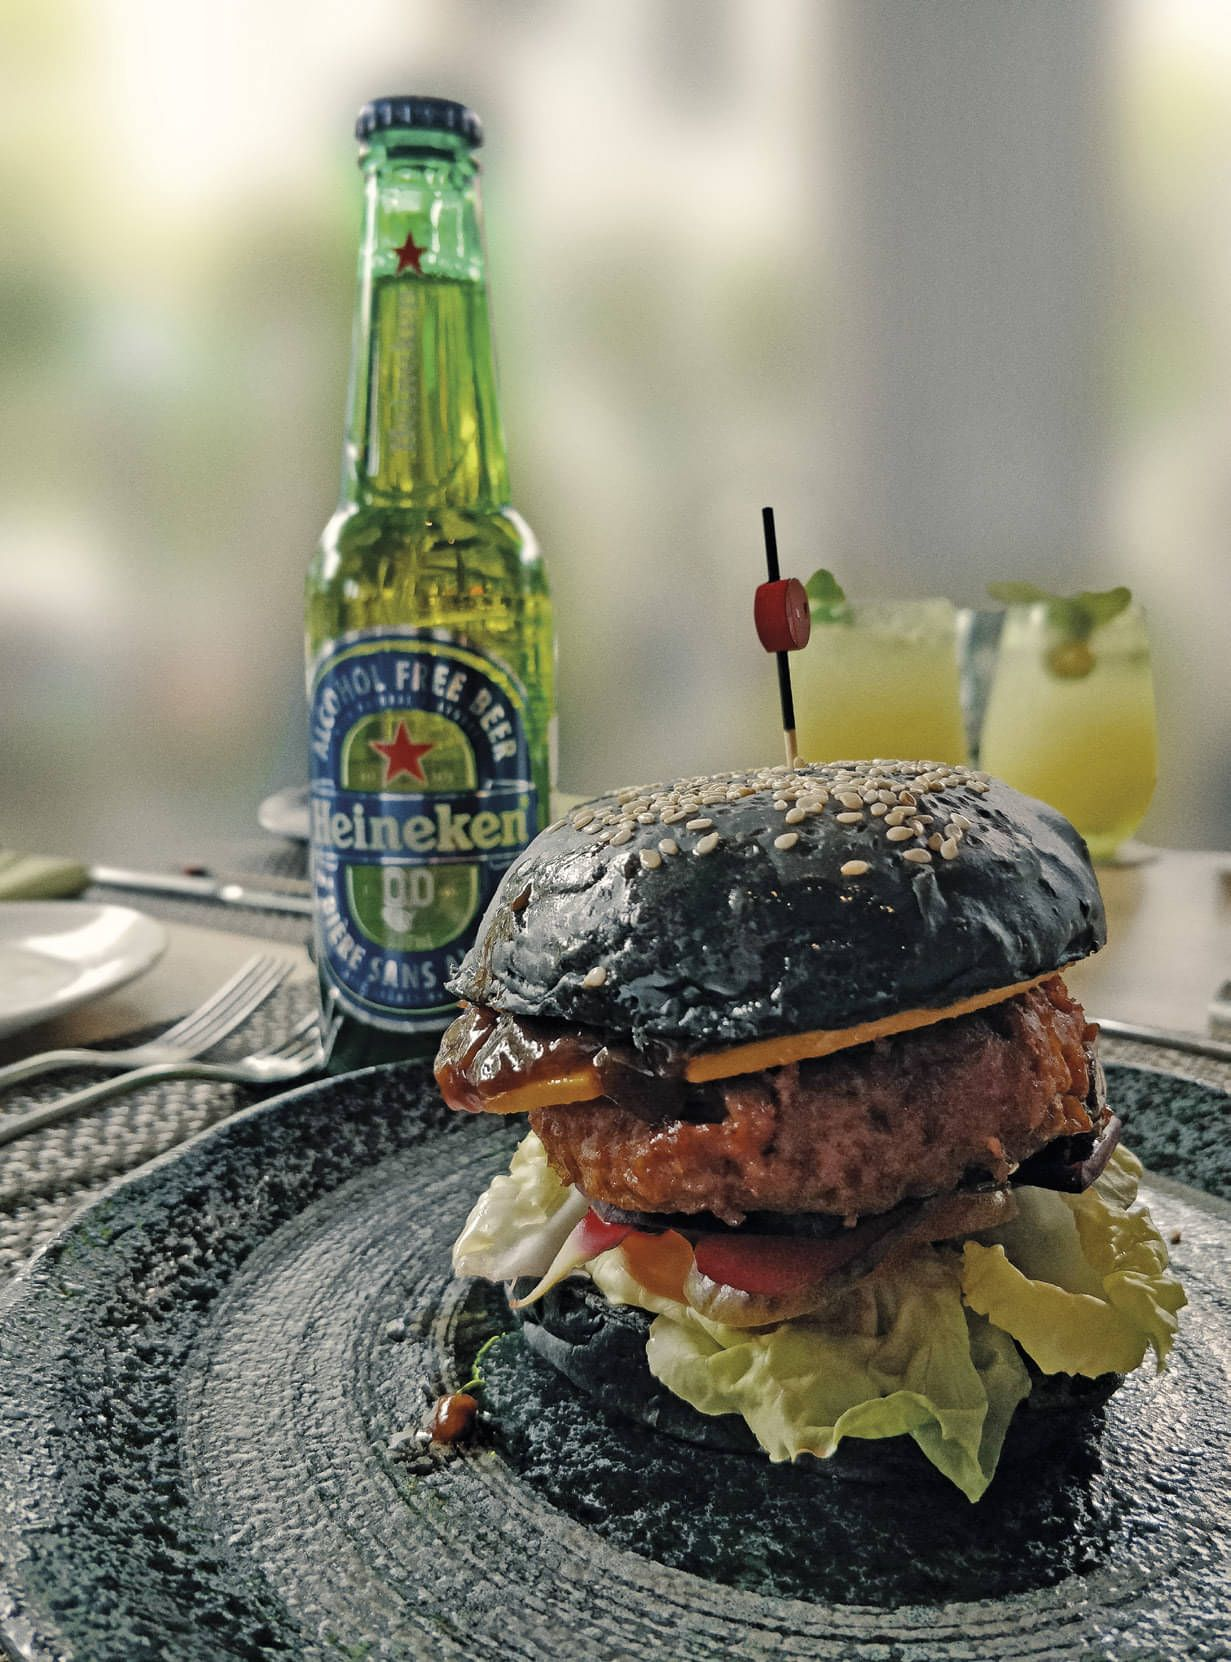 Burgers And Beers For A Guilt-Free Cheat Day